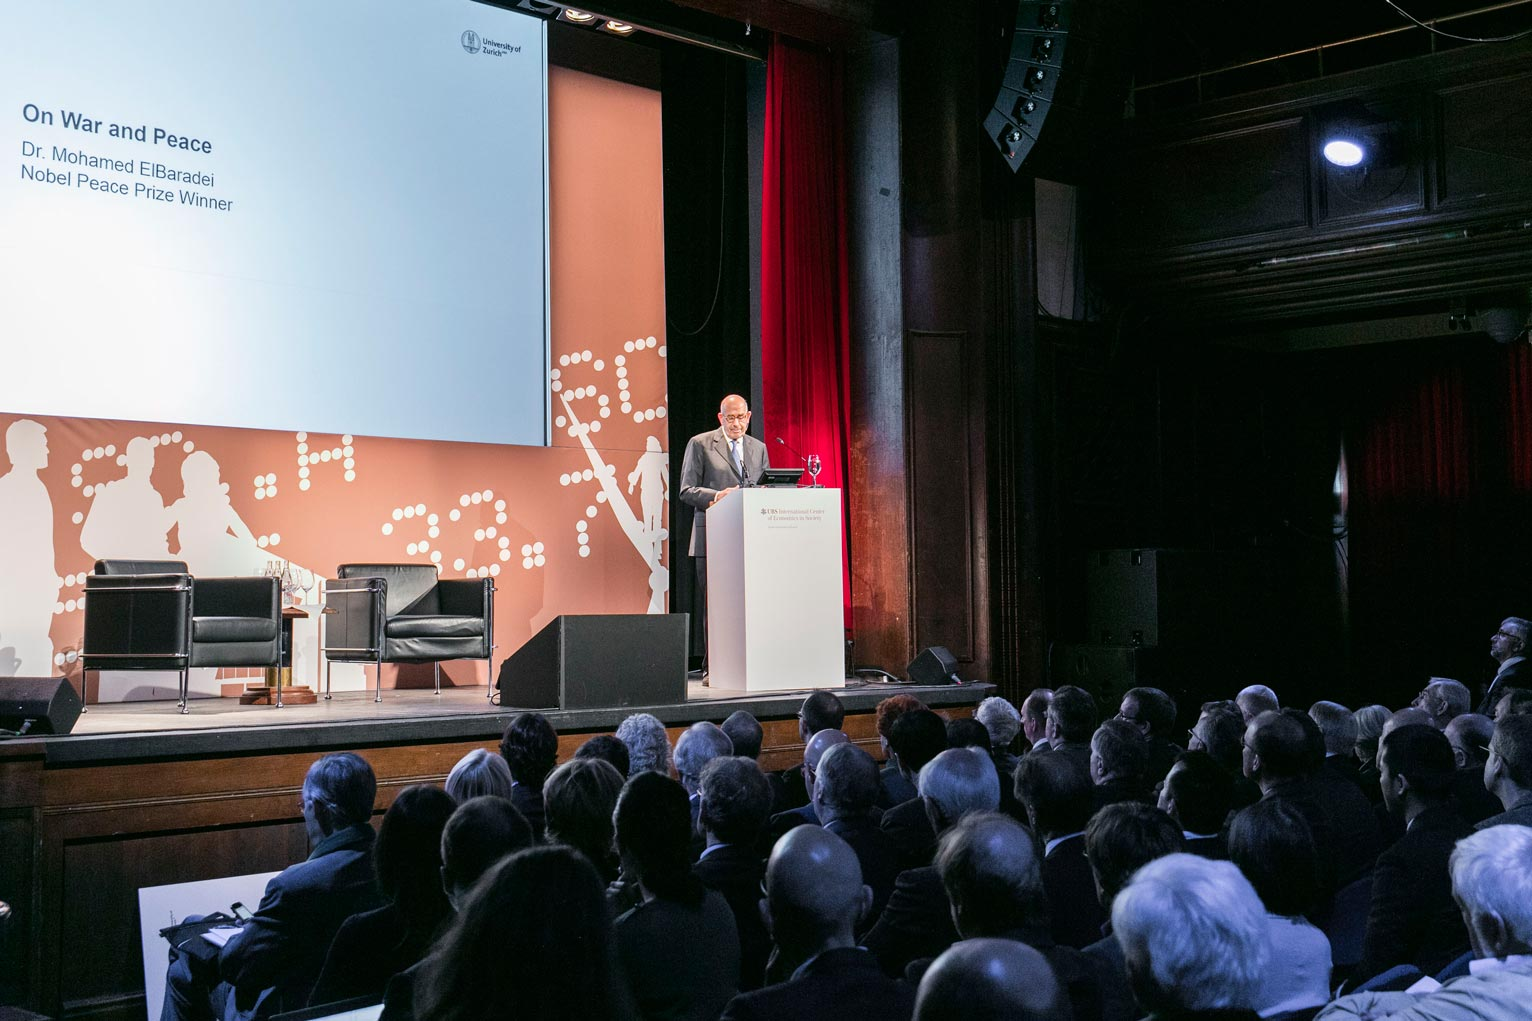 Mohamed ElBaradei during his keynote lecture